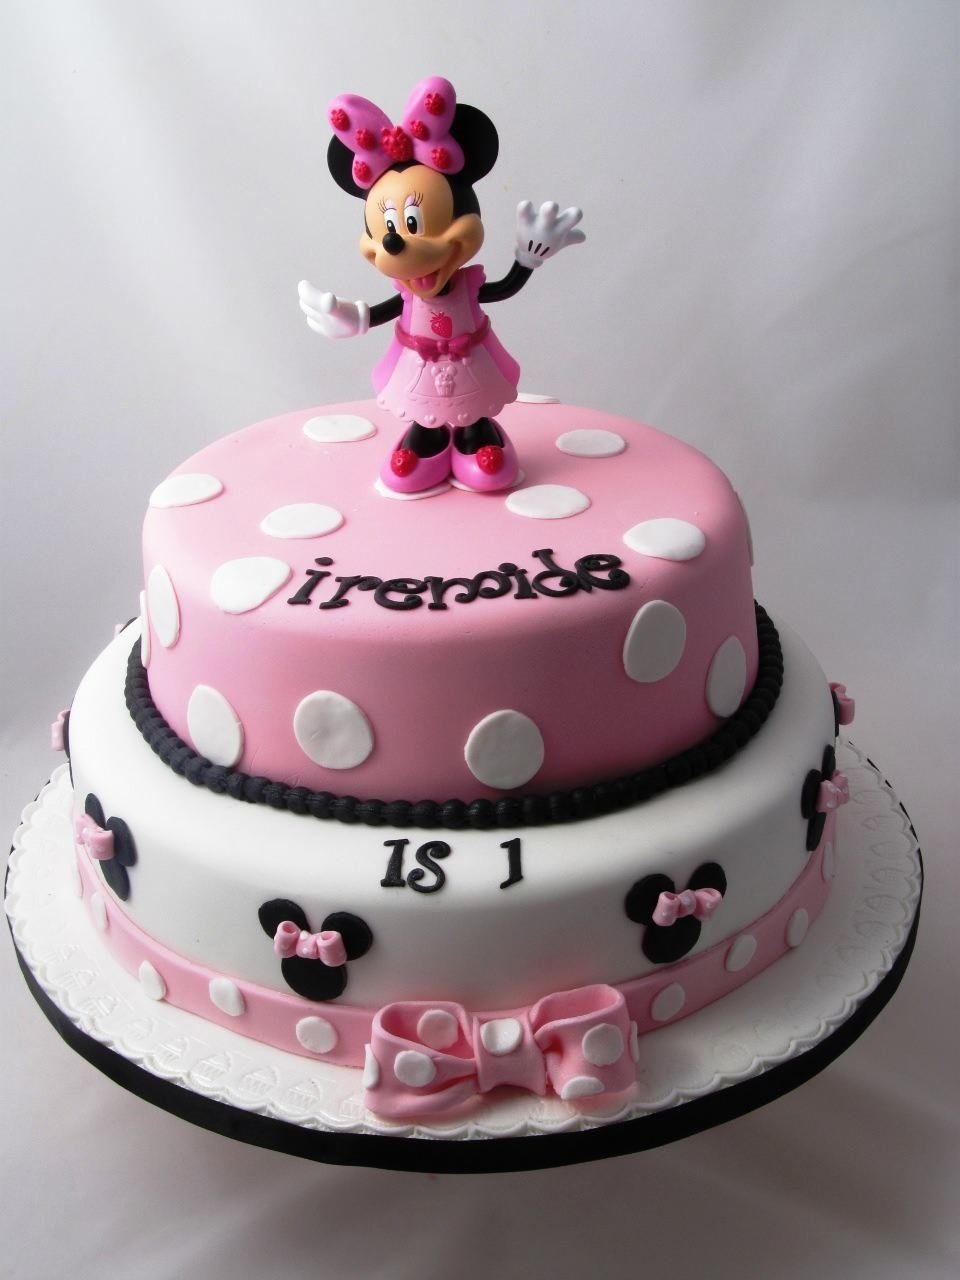 10 Ideal Minnie Mouse Birthday Cake Ideas minnie mouse birthday cakes ideas protoblogr design minnie mouse